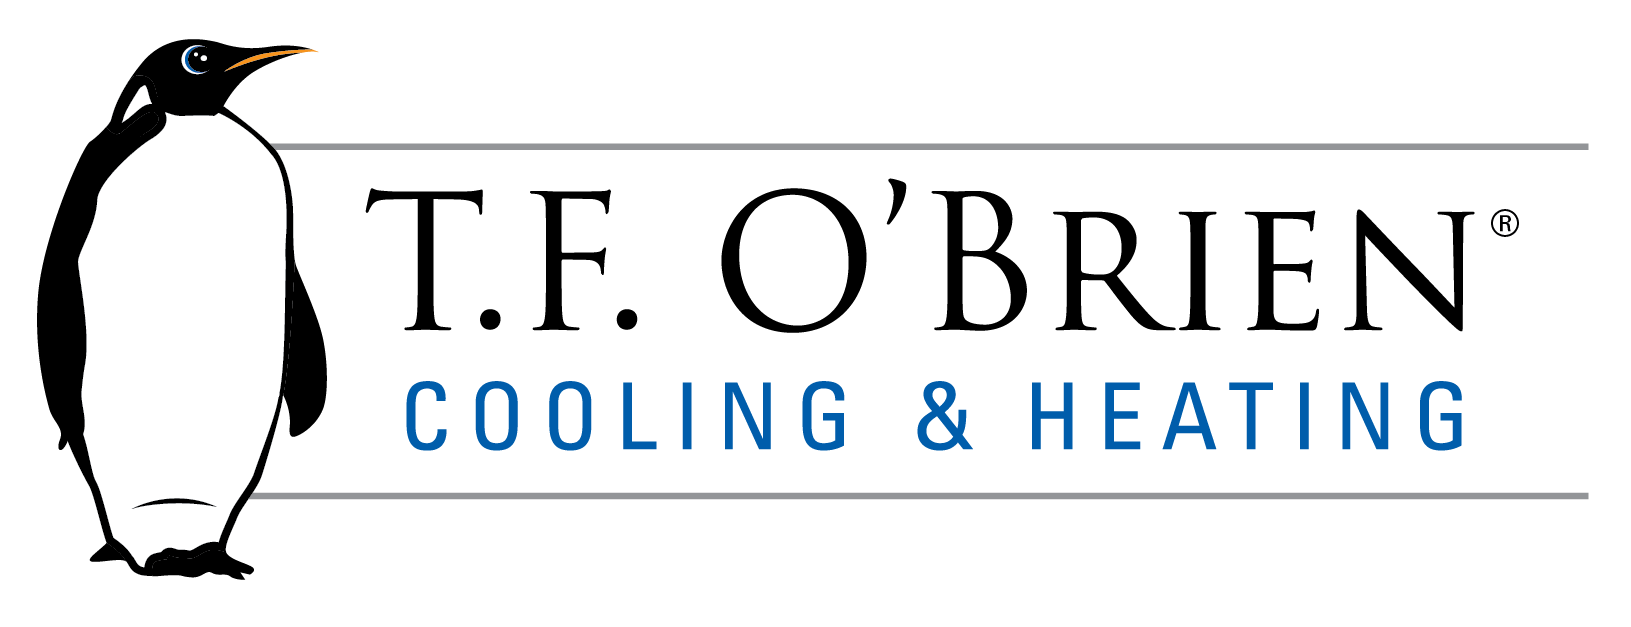 tf o'brien cooling and heating long island logo